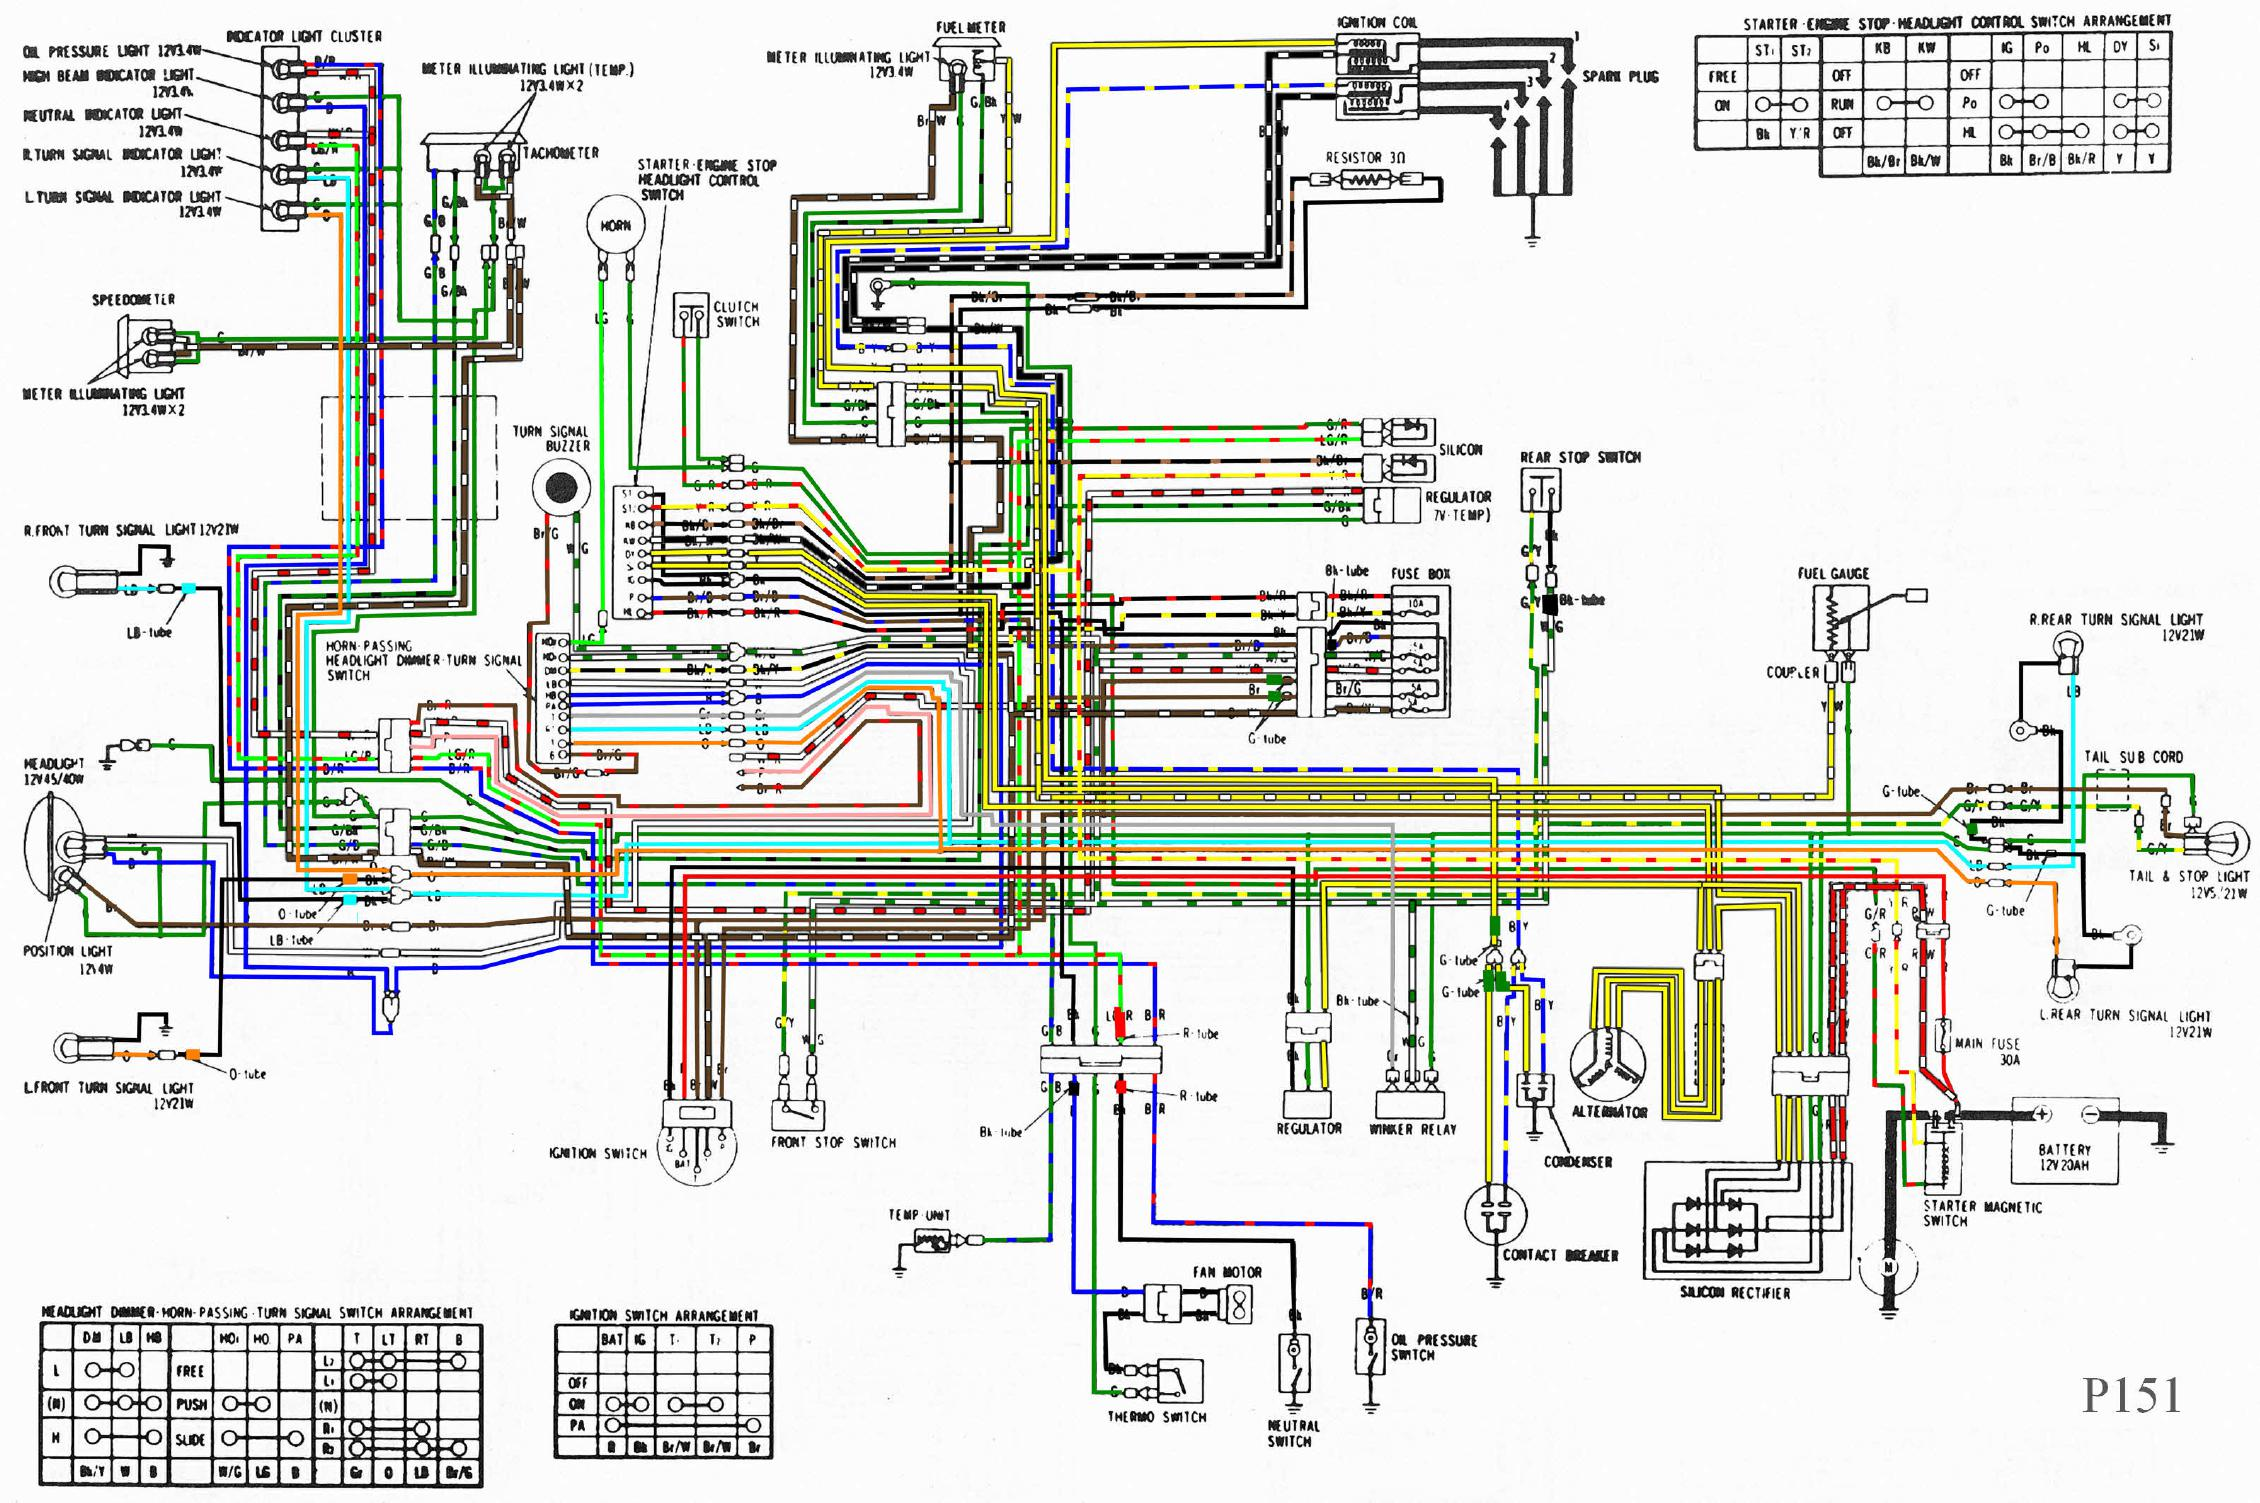 medium resolution of gl1800 wiring schematic simple wiring schema gl1800 wiring schematic 2008 goldwing wiring diagram